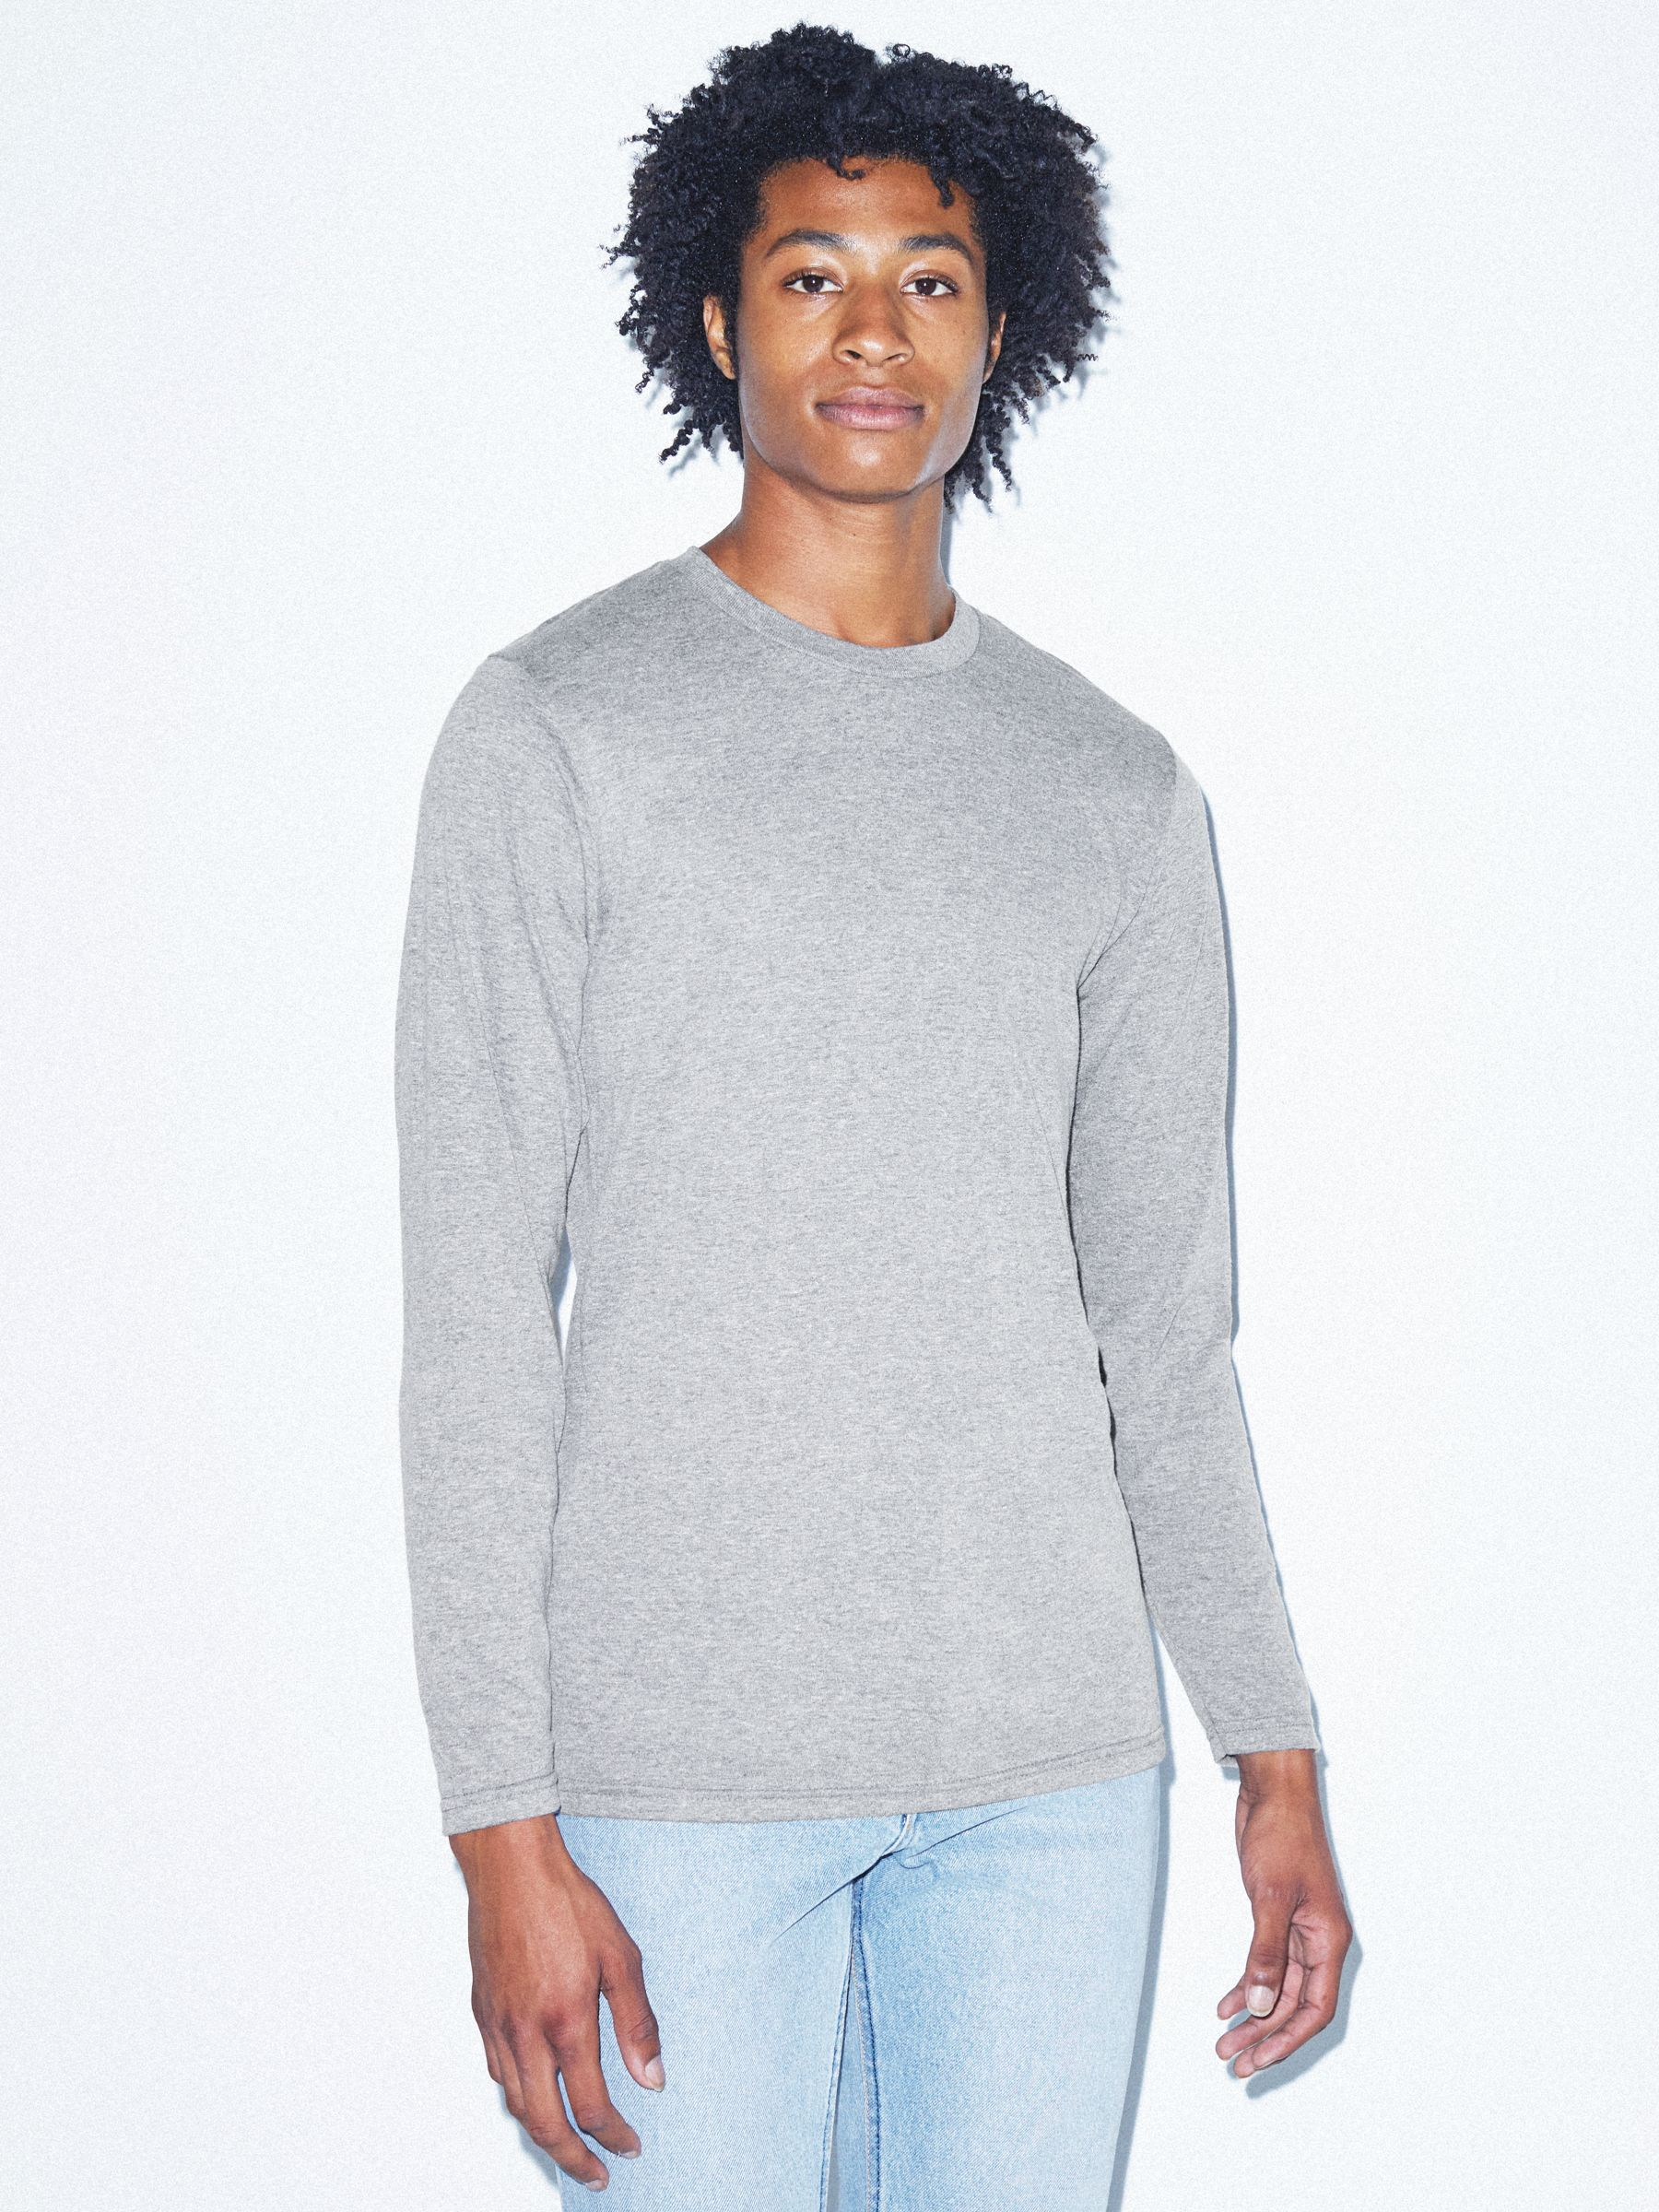 Tri Blend Long Sleeve T Shirt by American Apparel